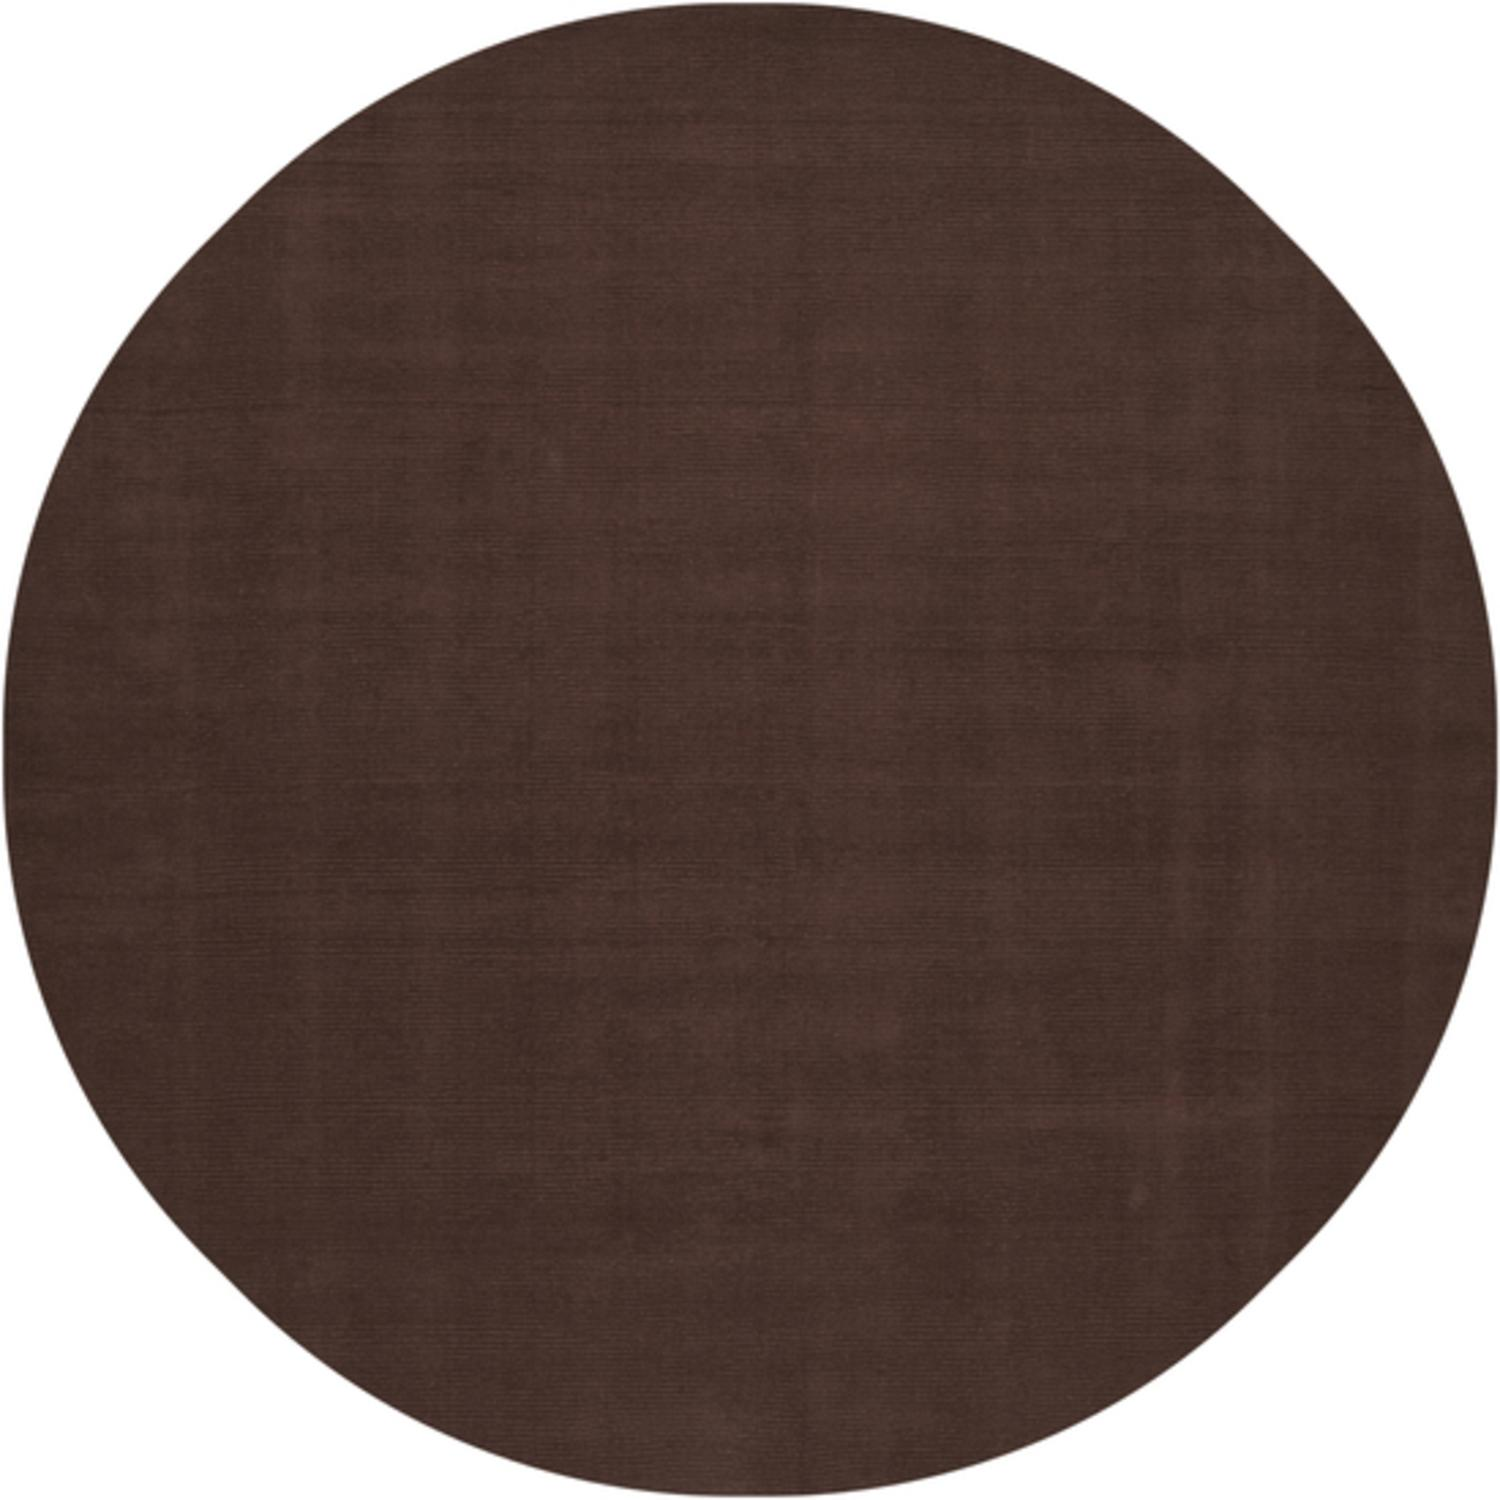 9.75' Rogue Love Chocolate Brown Wool Round Area Throw Rug